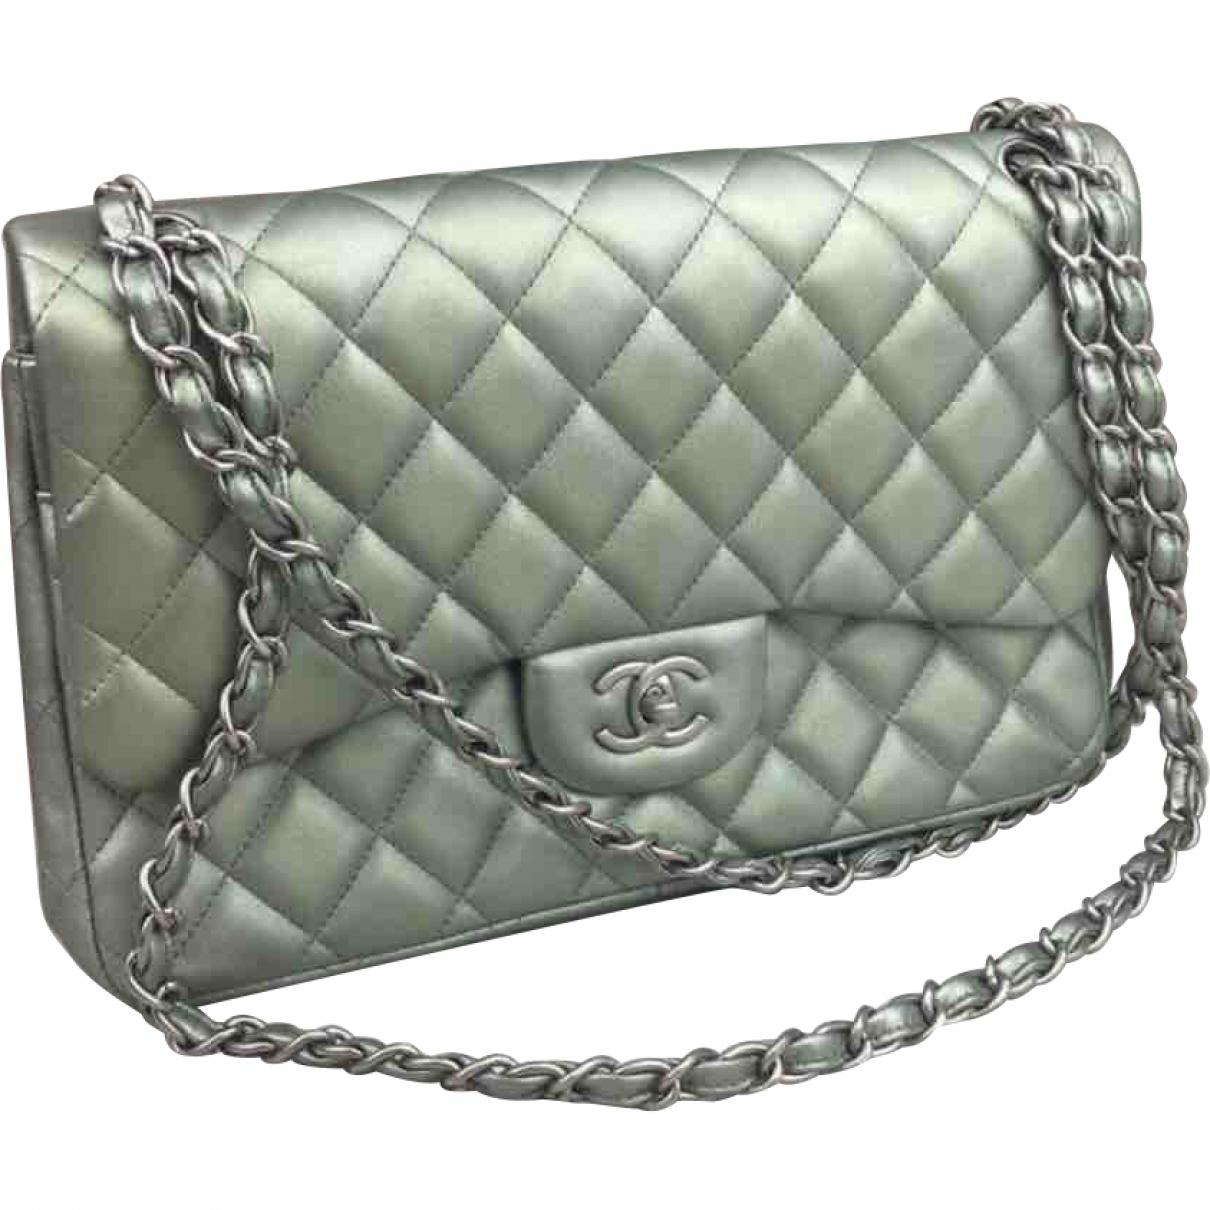 5f81f345873d Chanel Timeless Leather Handbag in Green - Lyst